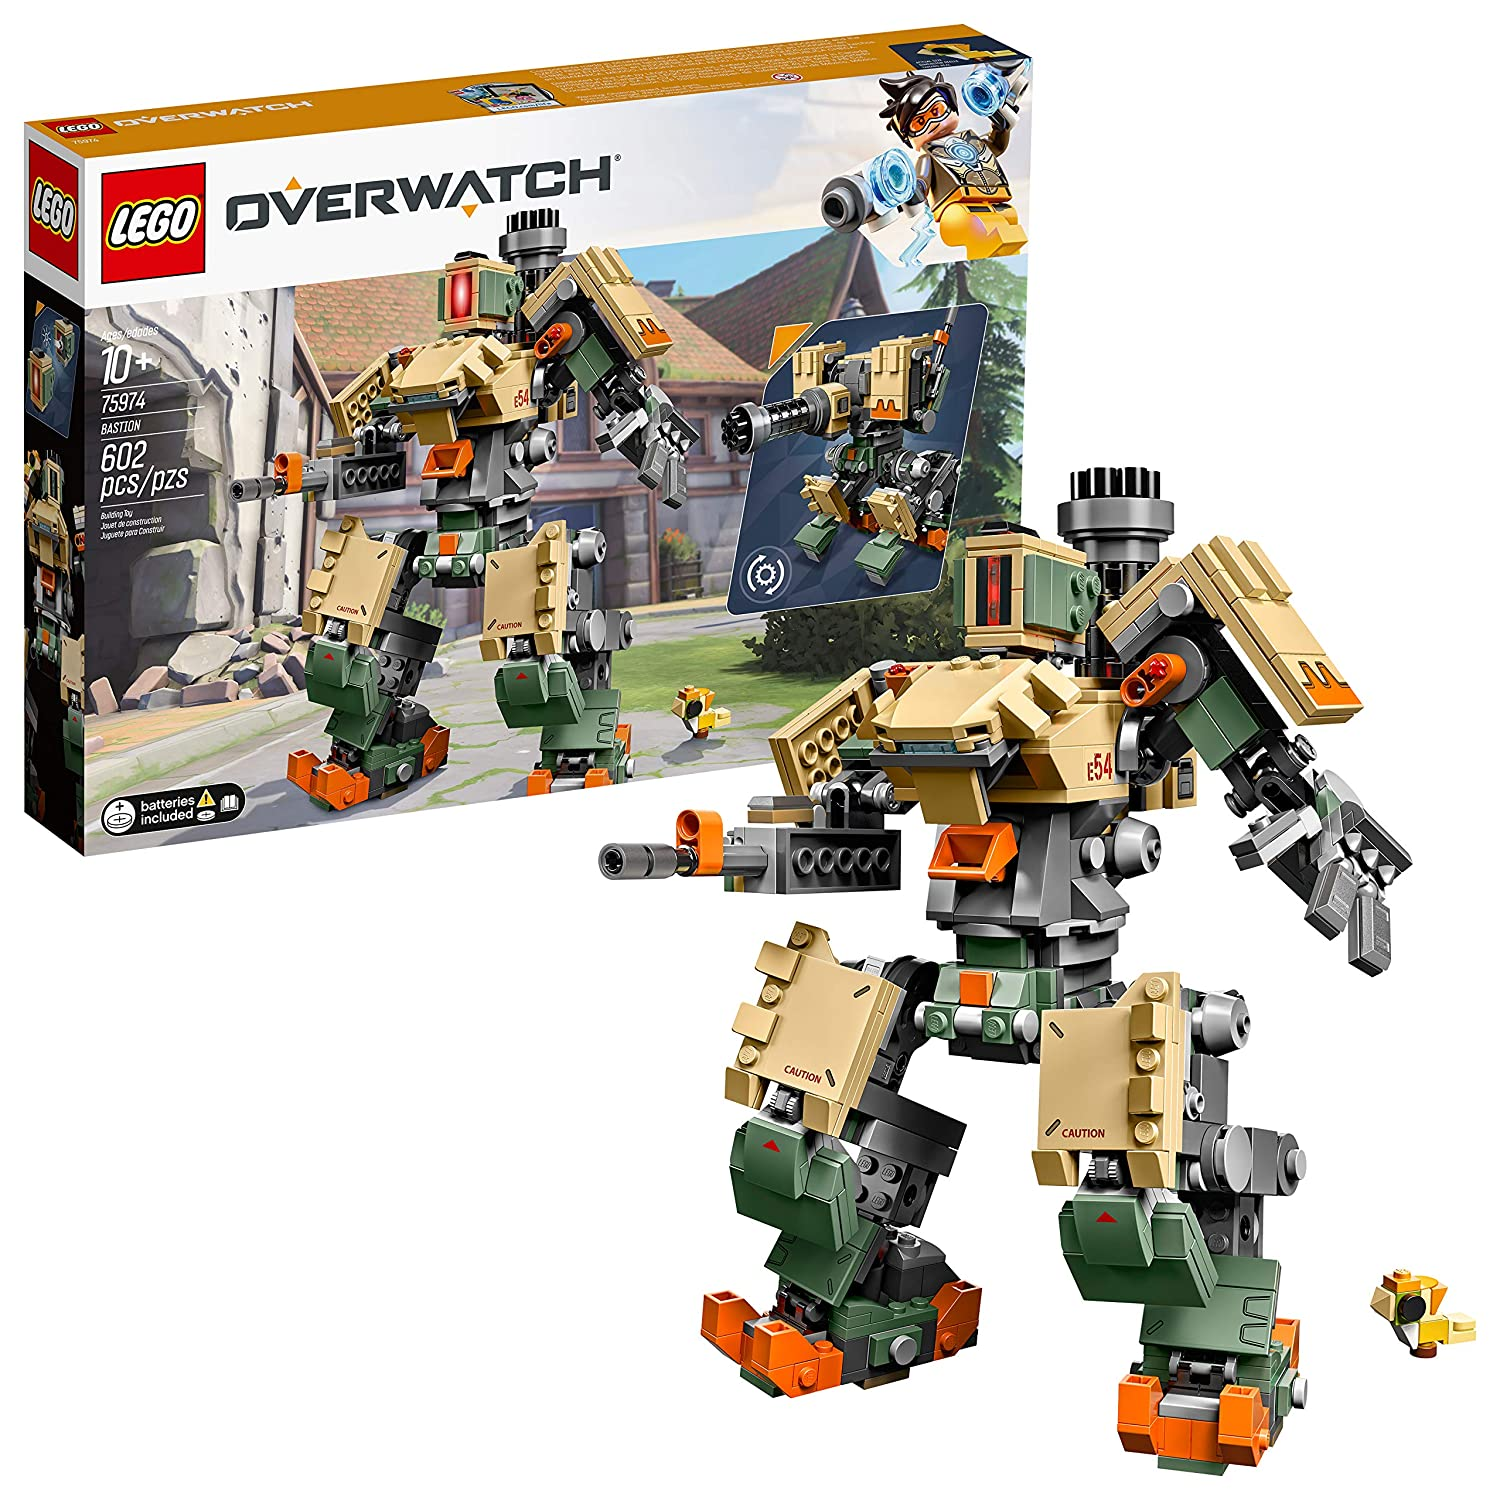 LEGO Overwatch 75974 Bastion Building Kit, 2019 (602 Pieces)